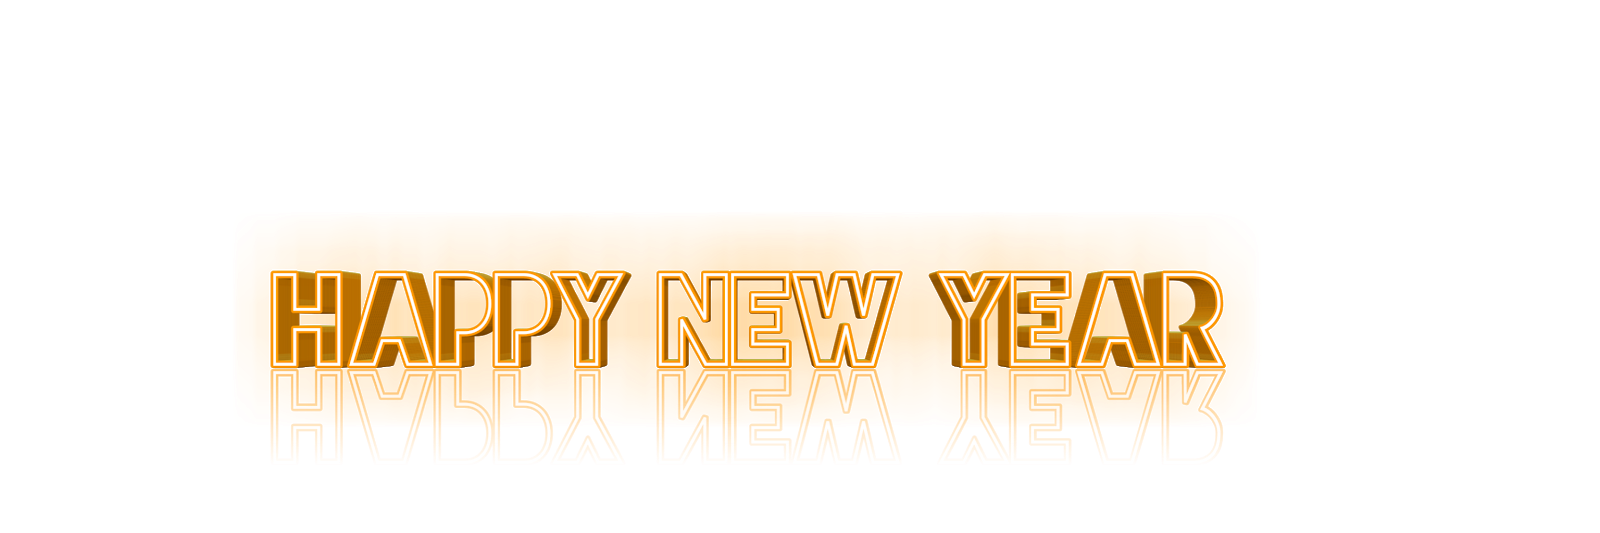 Happy new year 2020 text png download   Happy new year ...